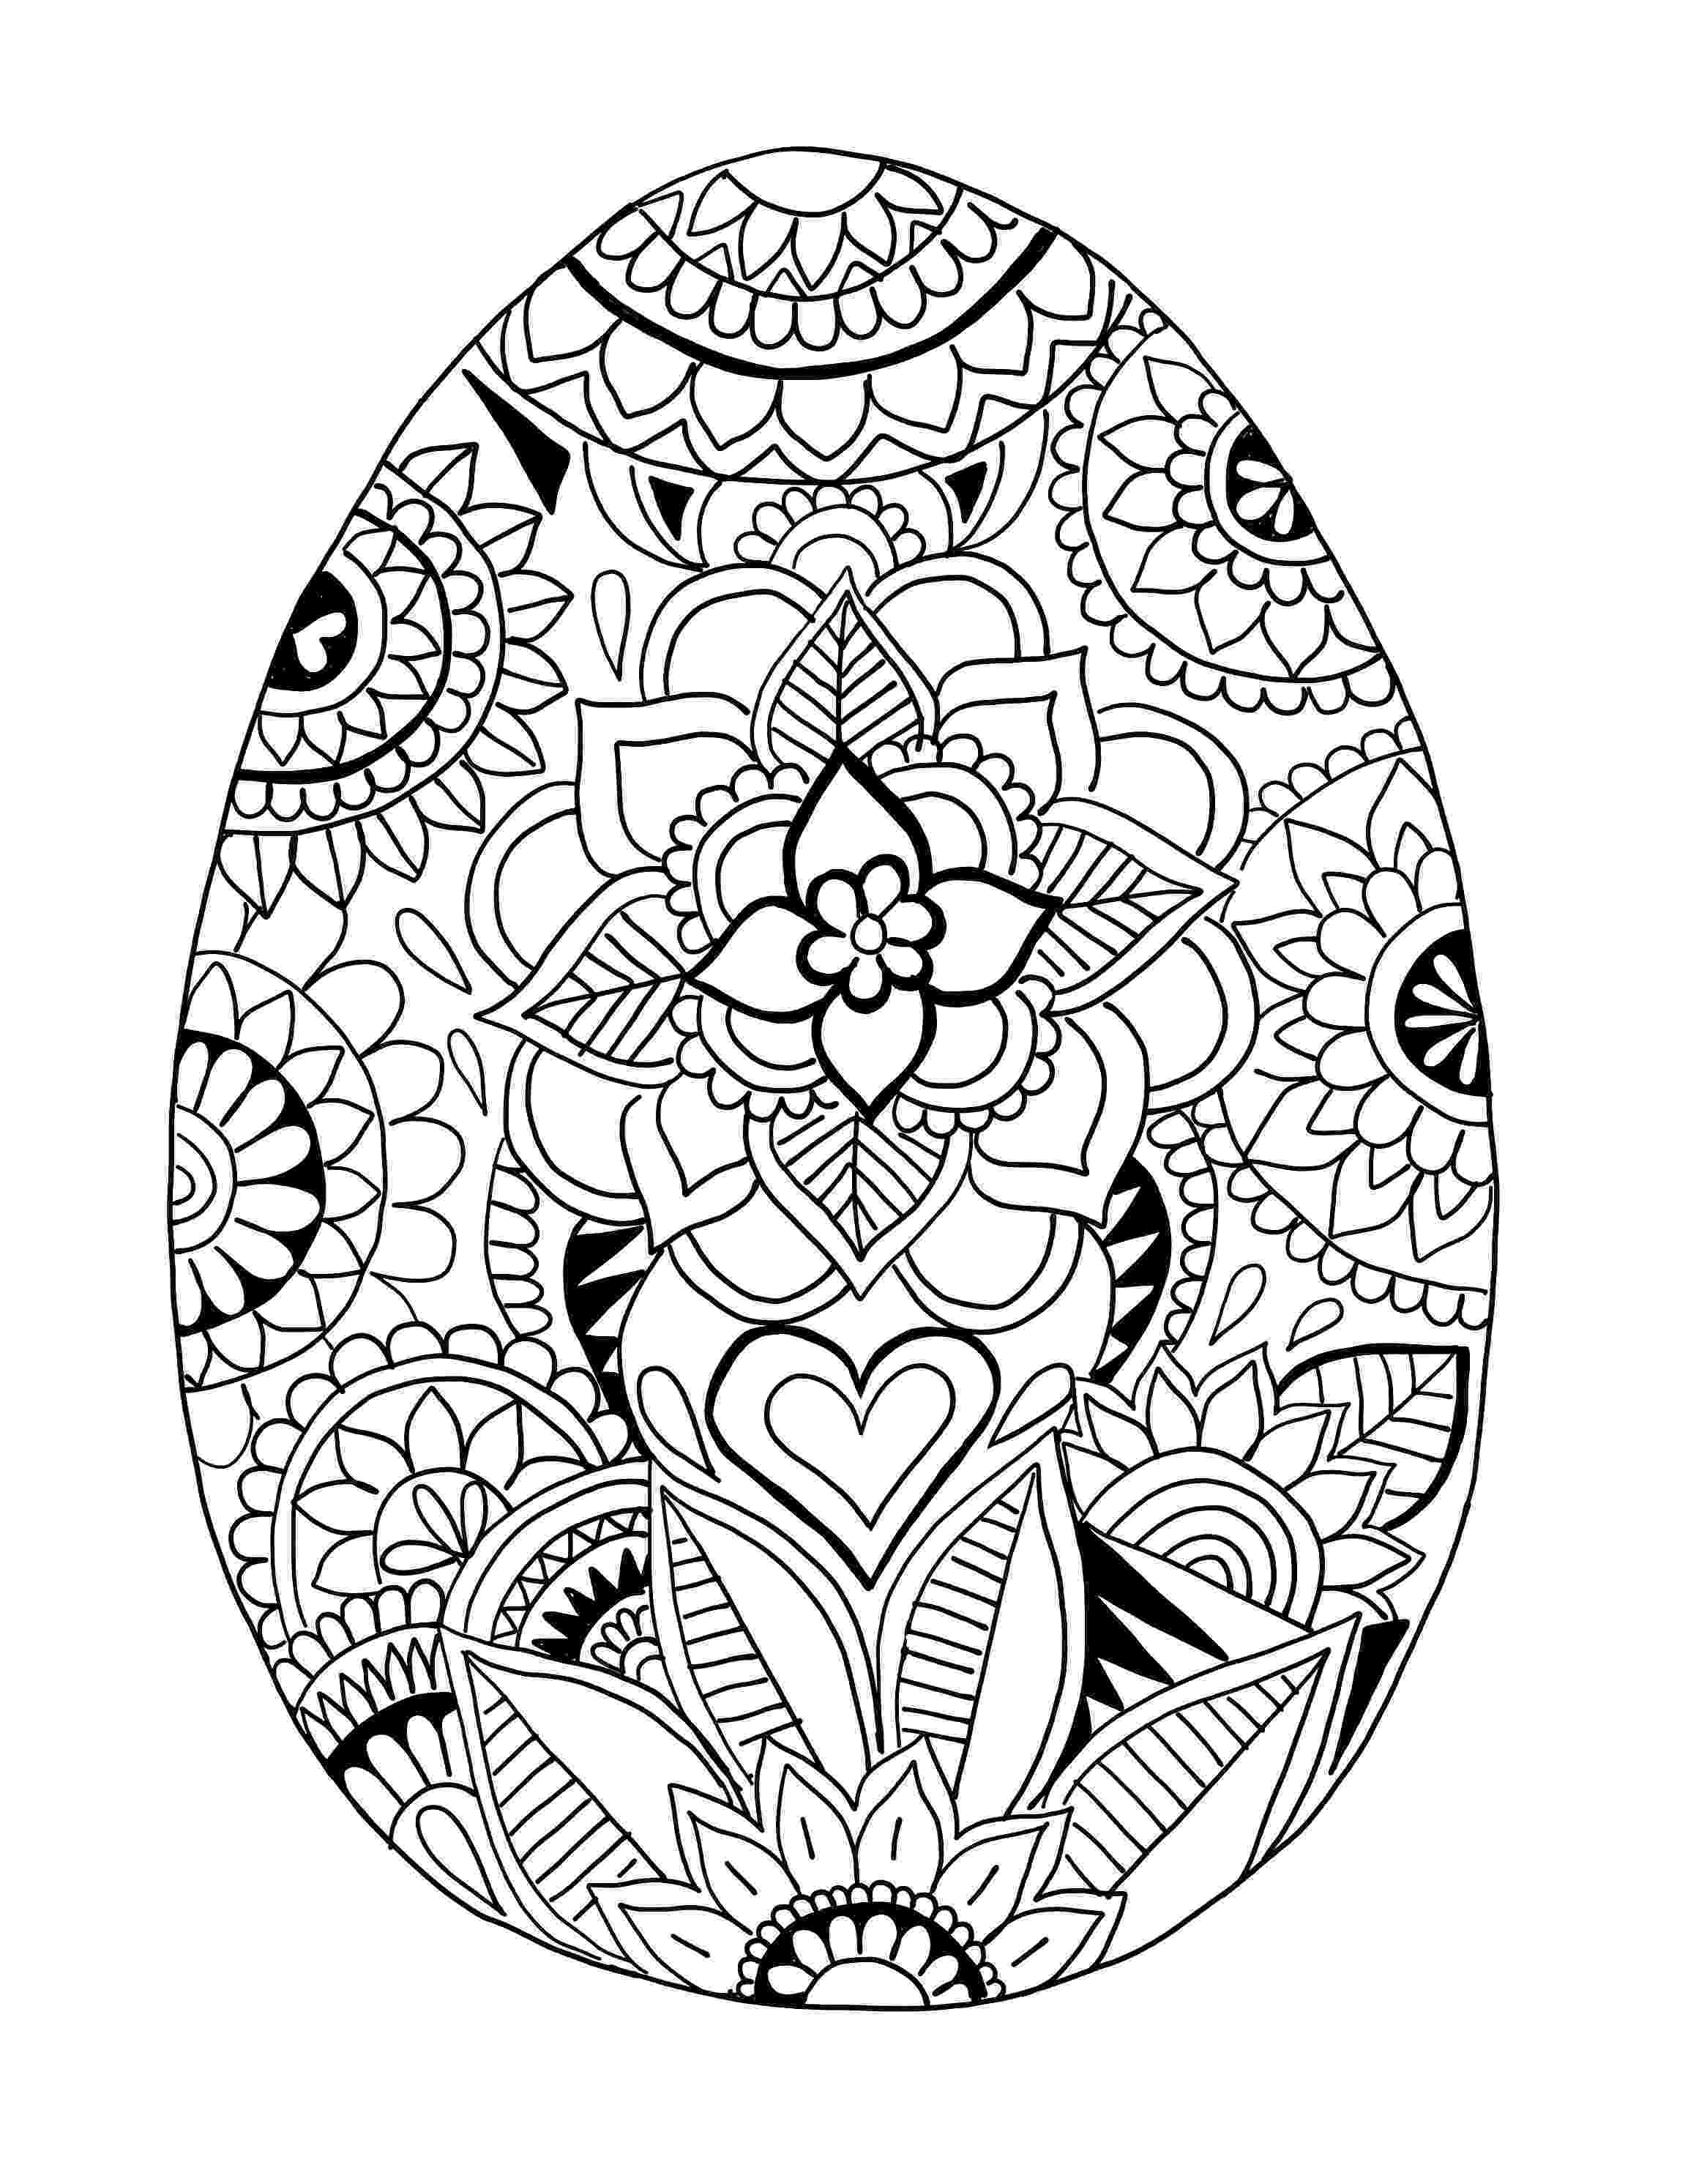 eggs coloring page easter egg coloring pages twopartswhimsicalonepartpeculiar eggs page coloring 1 1